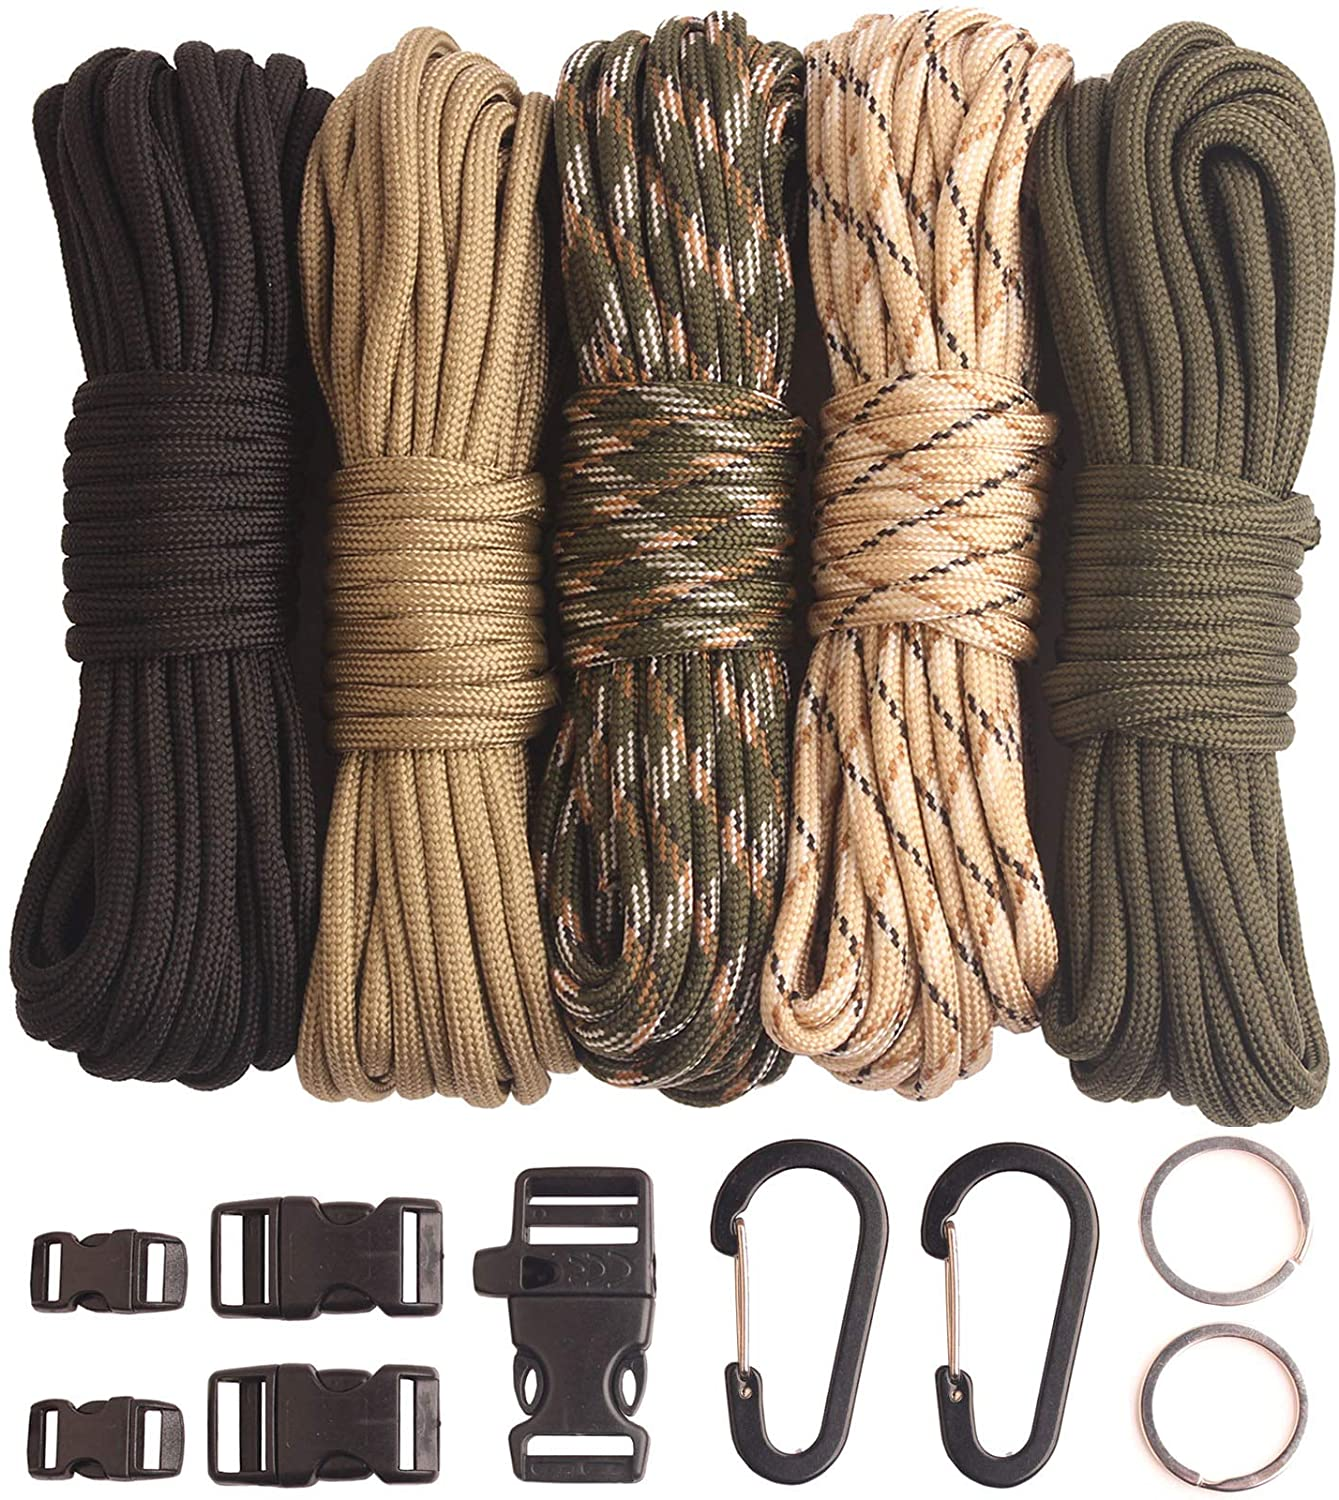 BENGKU Paracord Parachute Cord 550lb Type III Paracord Combo Crafting Kit for Paracord Bracelet,Paracord Lanyards,Many Colors of Parachute Cord,Buckles and Key Rings.